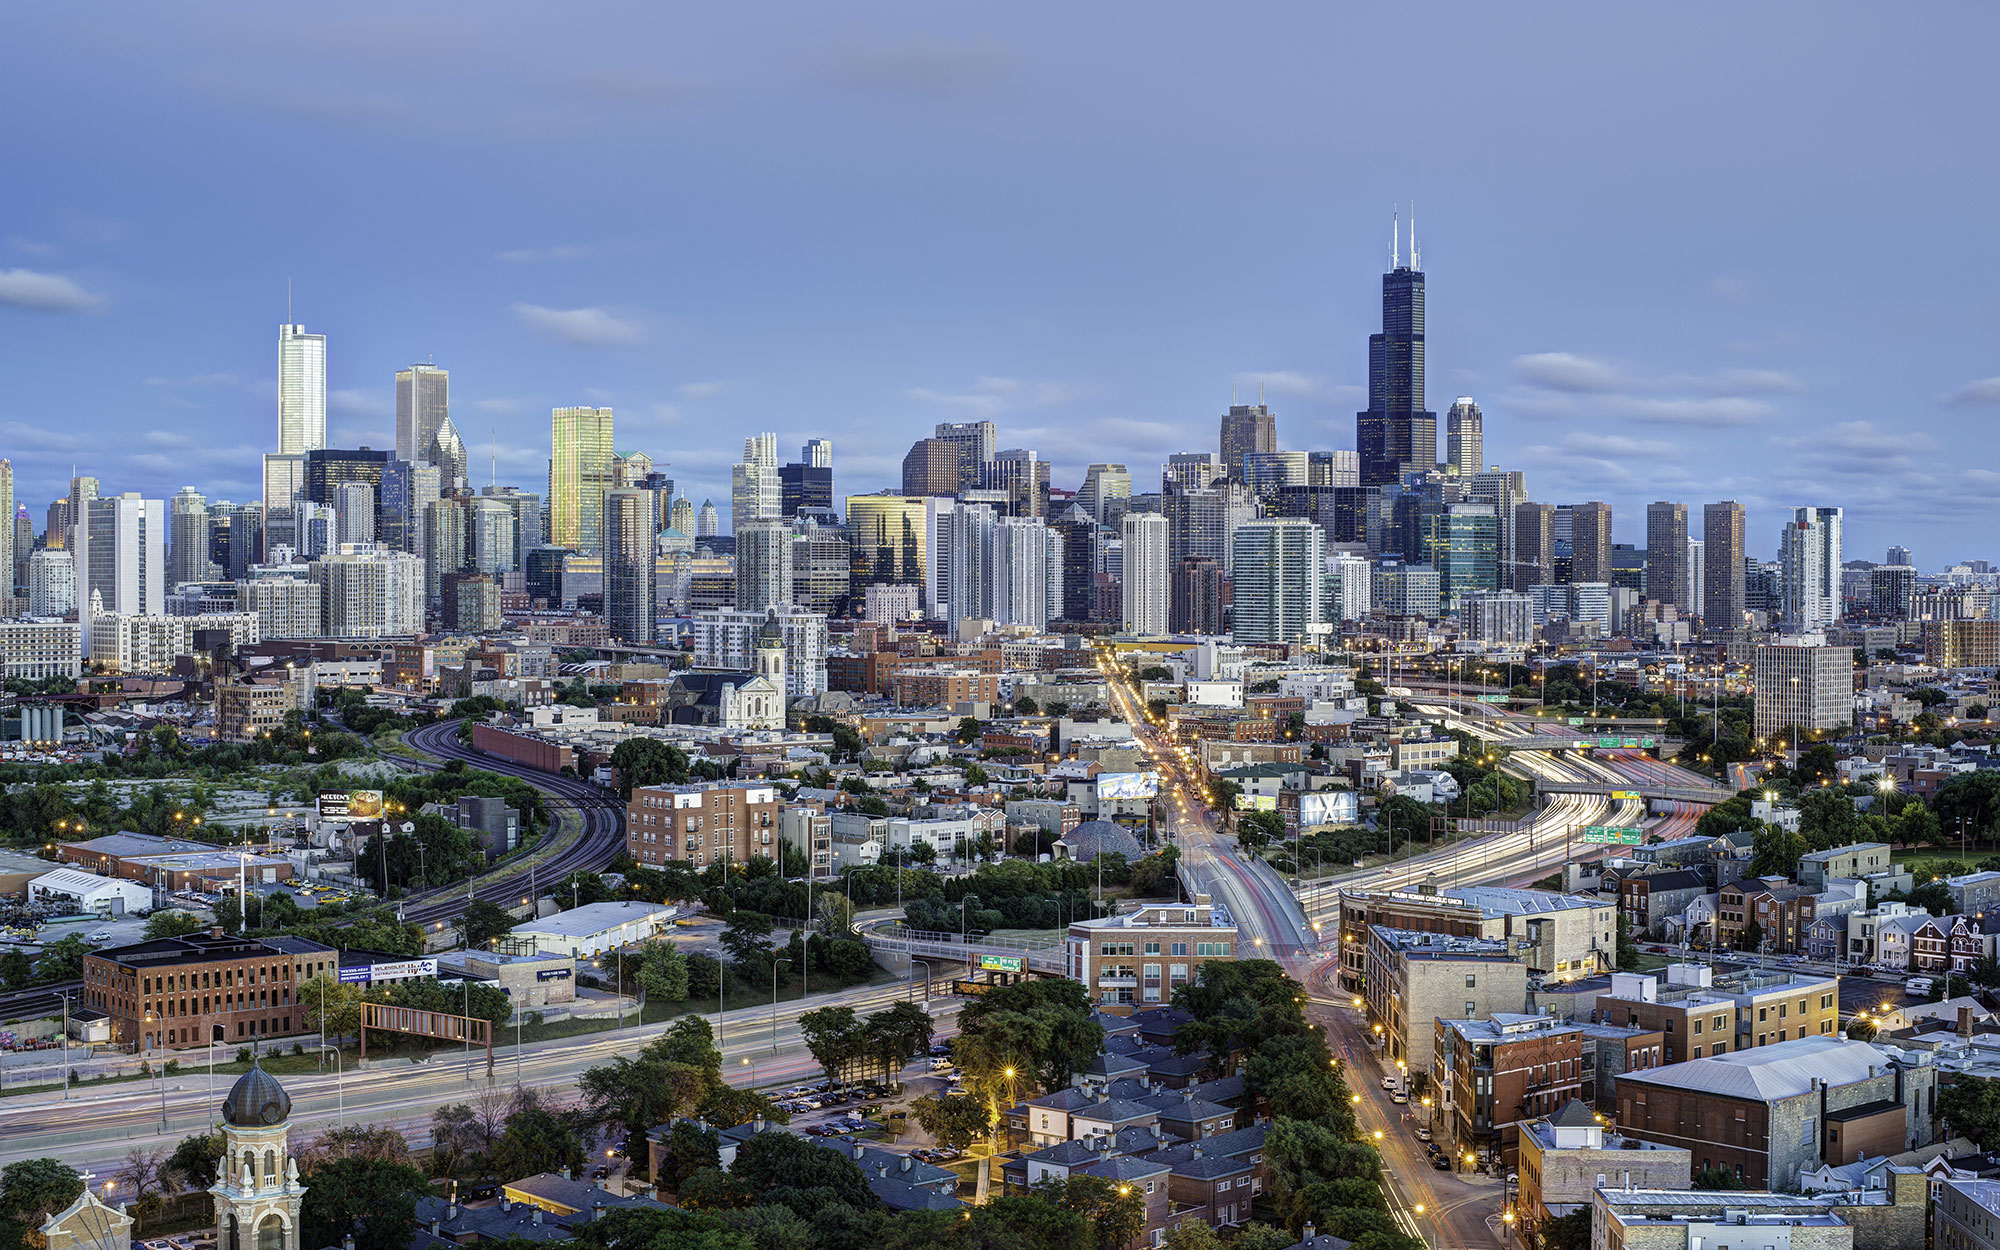 America's best cities for winter travel: Chicago